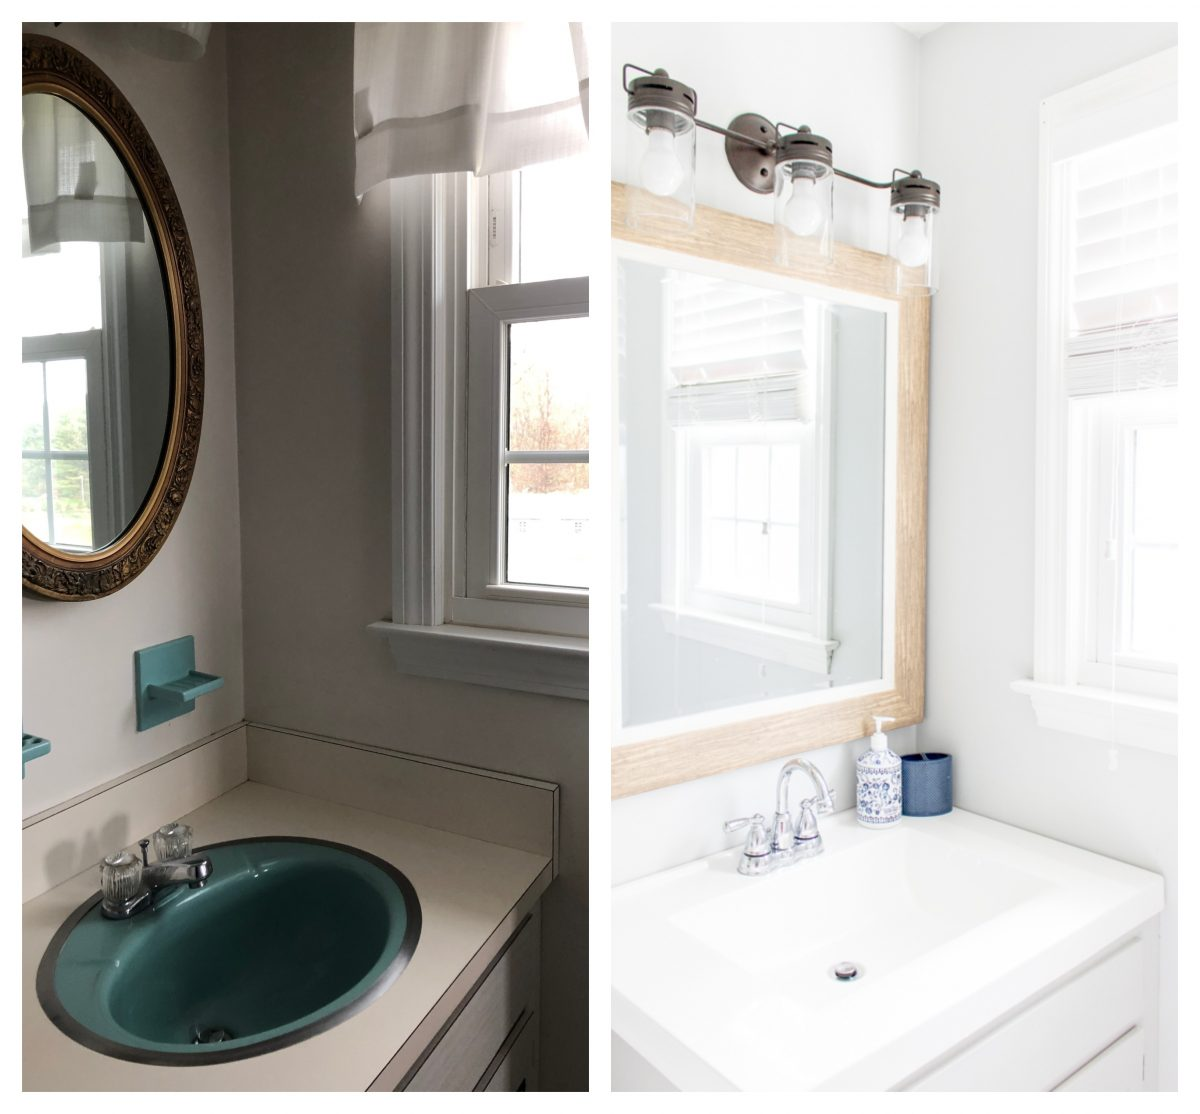 Bathroom Light Fixture Upgrade - 5 Ways to Update an Old House